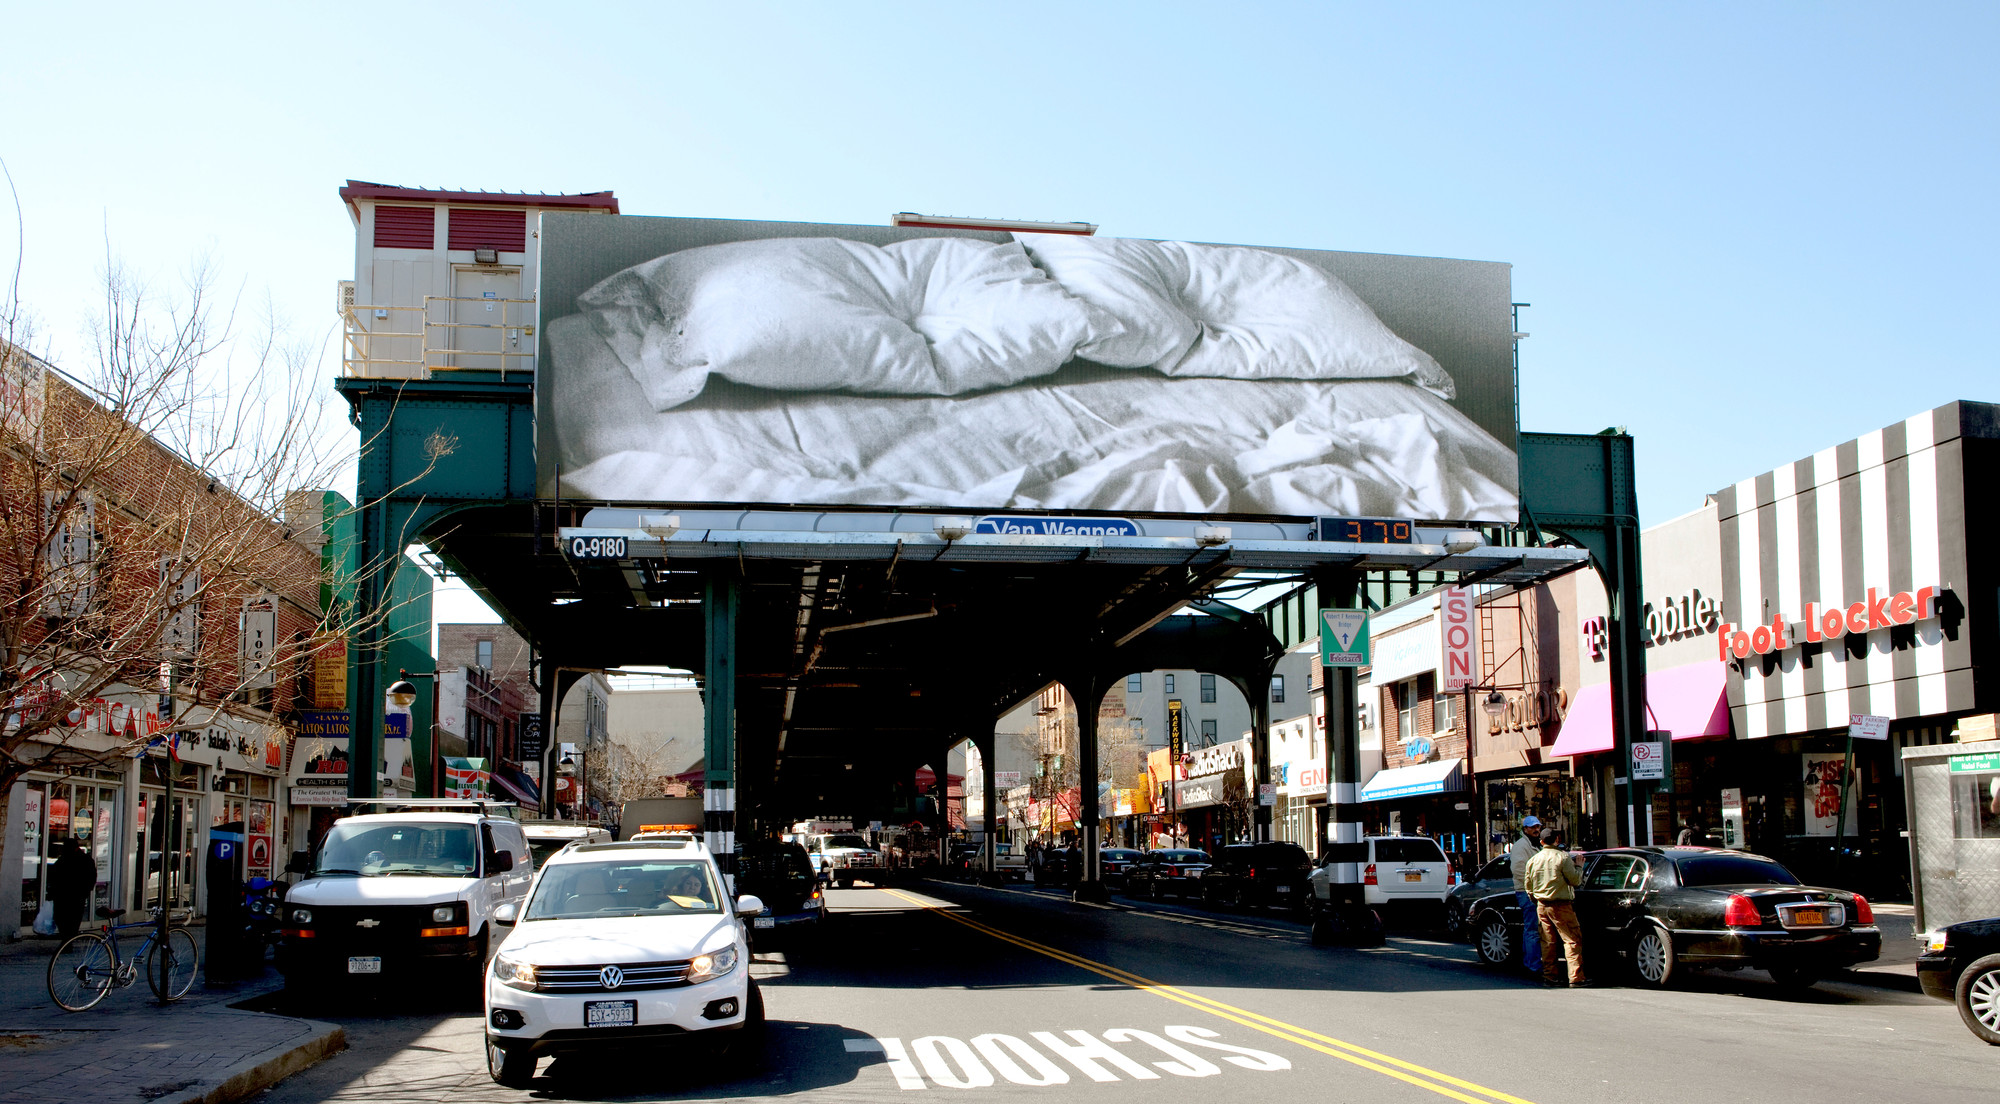 Felix Gonzalez-Torres. Untitled (billboard). 1996. Gift of Werner and Elaine Dannheisser. Photo: David Allison